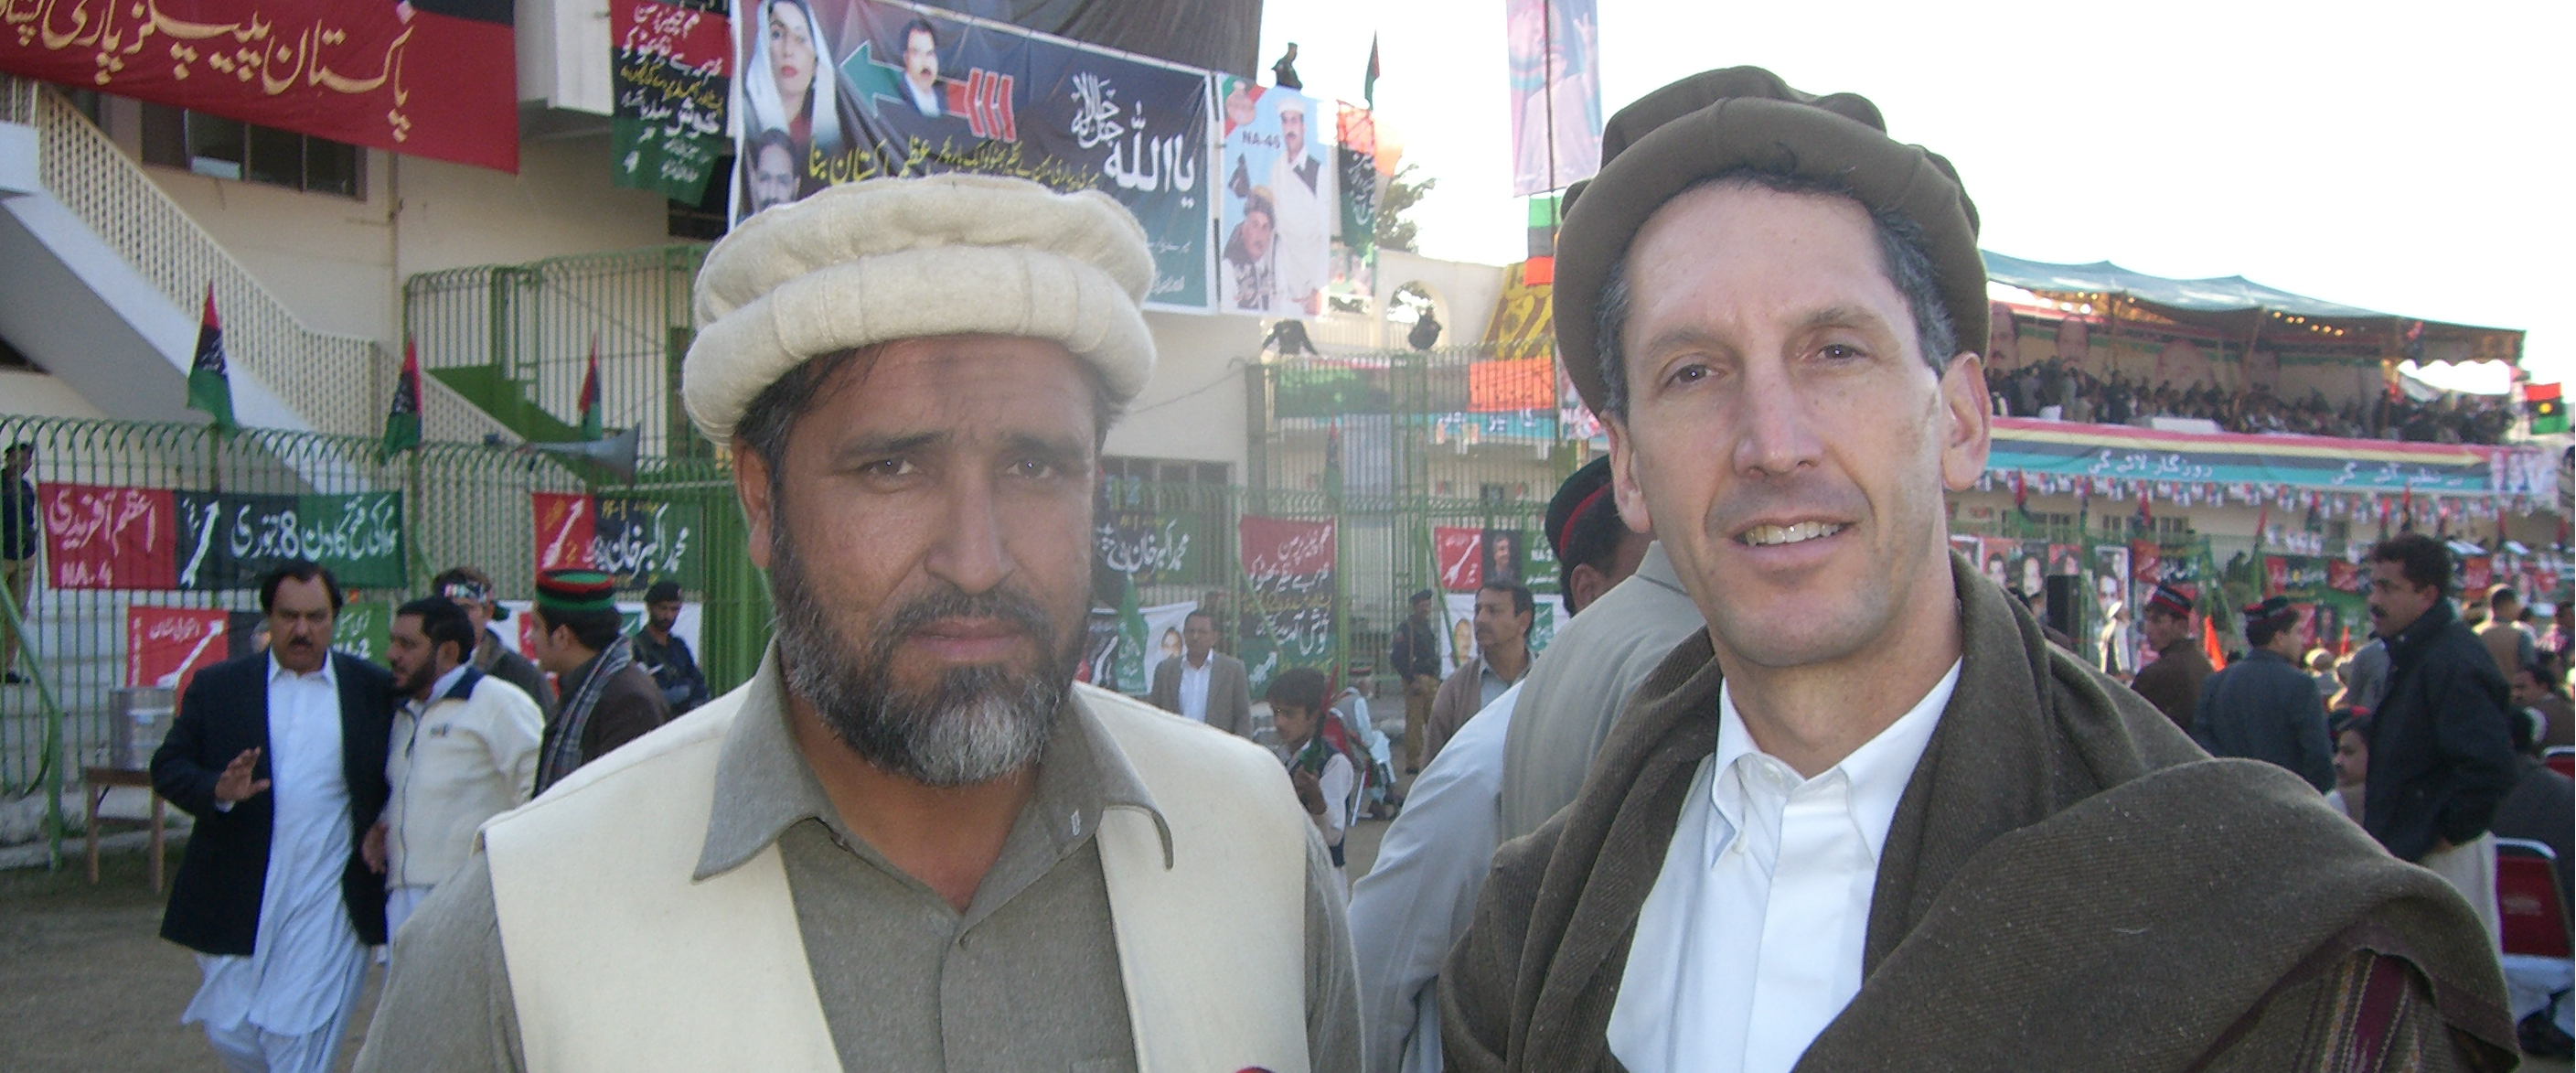 Edward P. Joseph in Peshawar in local Pashtun garb (recommended for security), attending Benazir Bhutto's election rally at the local cricket stadium, on 26 December 2007. Bhutto supporter is pictured alongside.